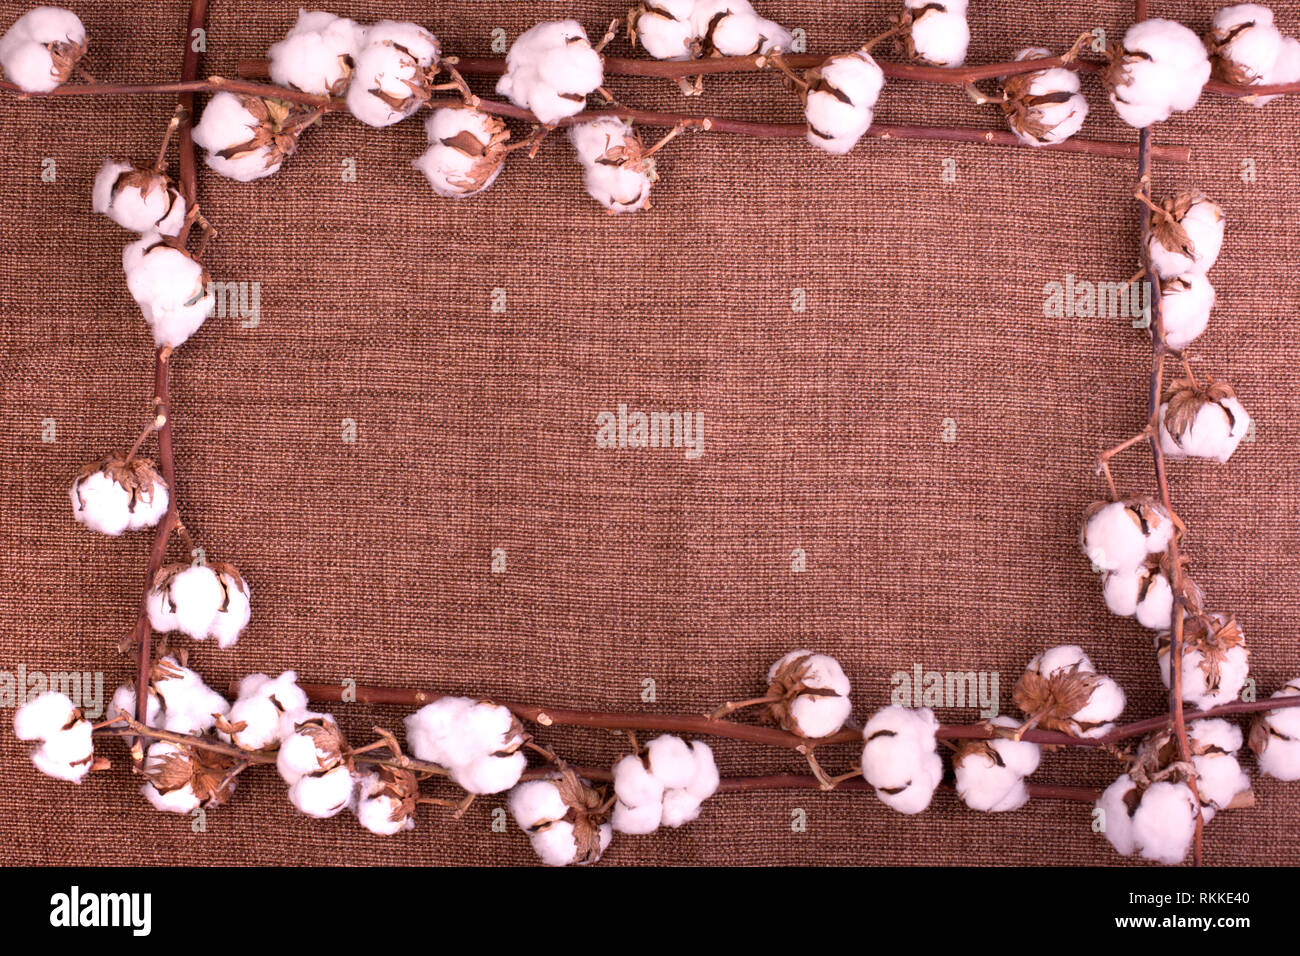 Flower design with fluffy dried cotton bolls over rough brown burlap. Top view, copy space, greeting card - Stock Image